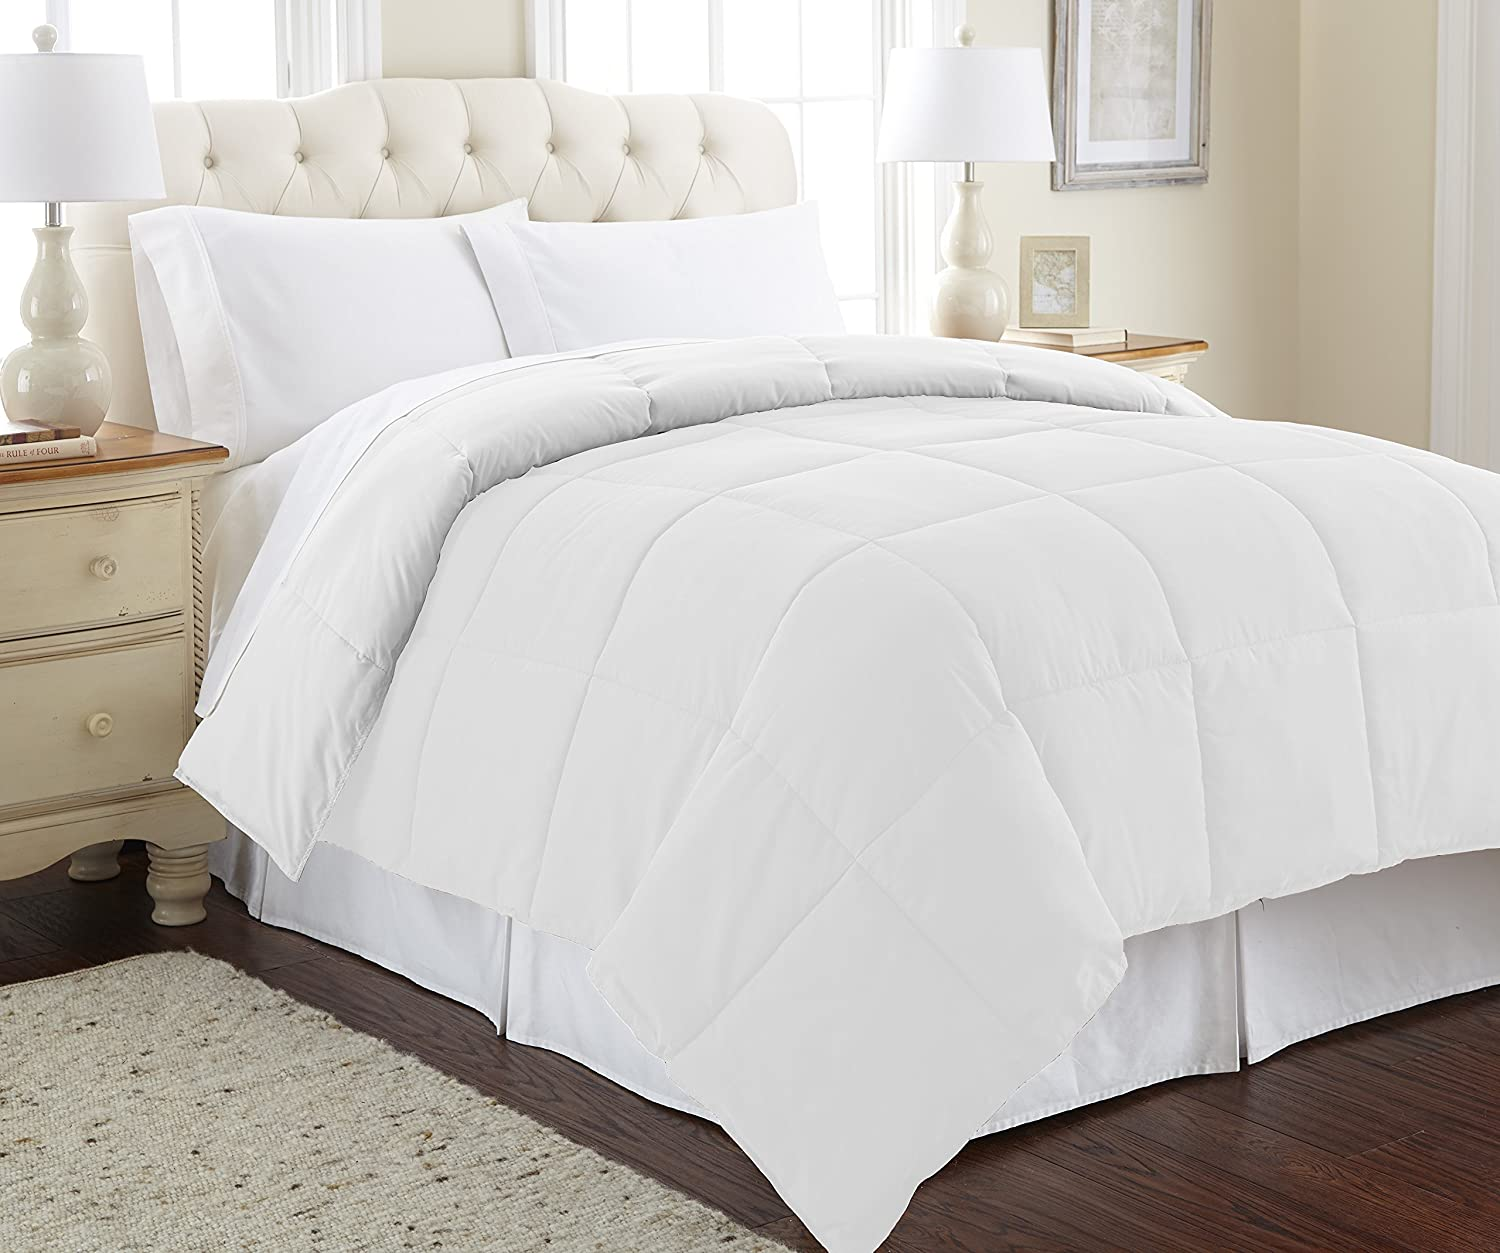 black with skirt comforters table miley mini bedspreads frame comforter white set simple bedside and ruffle plain metal bed bedroom round full